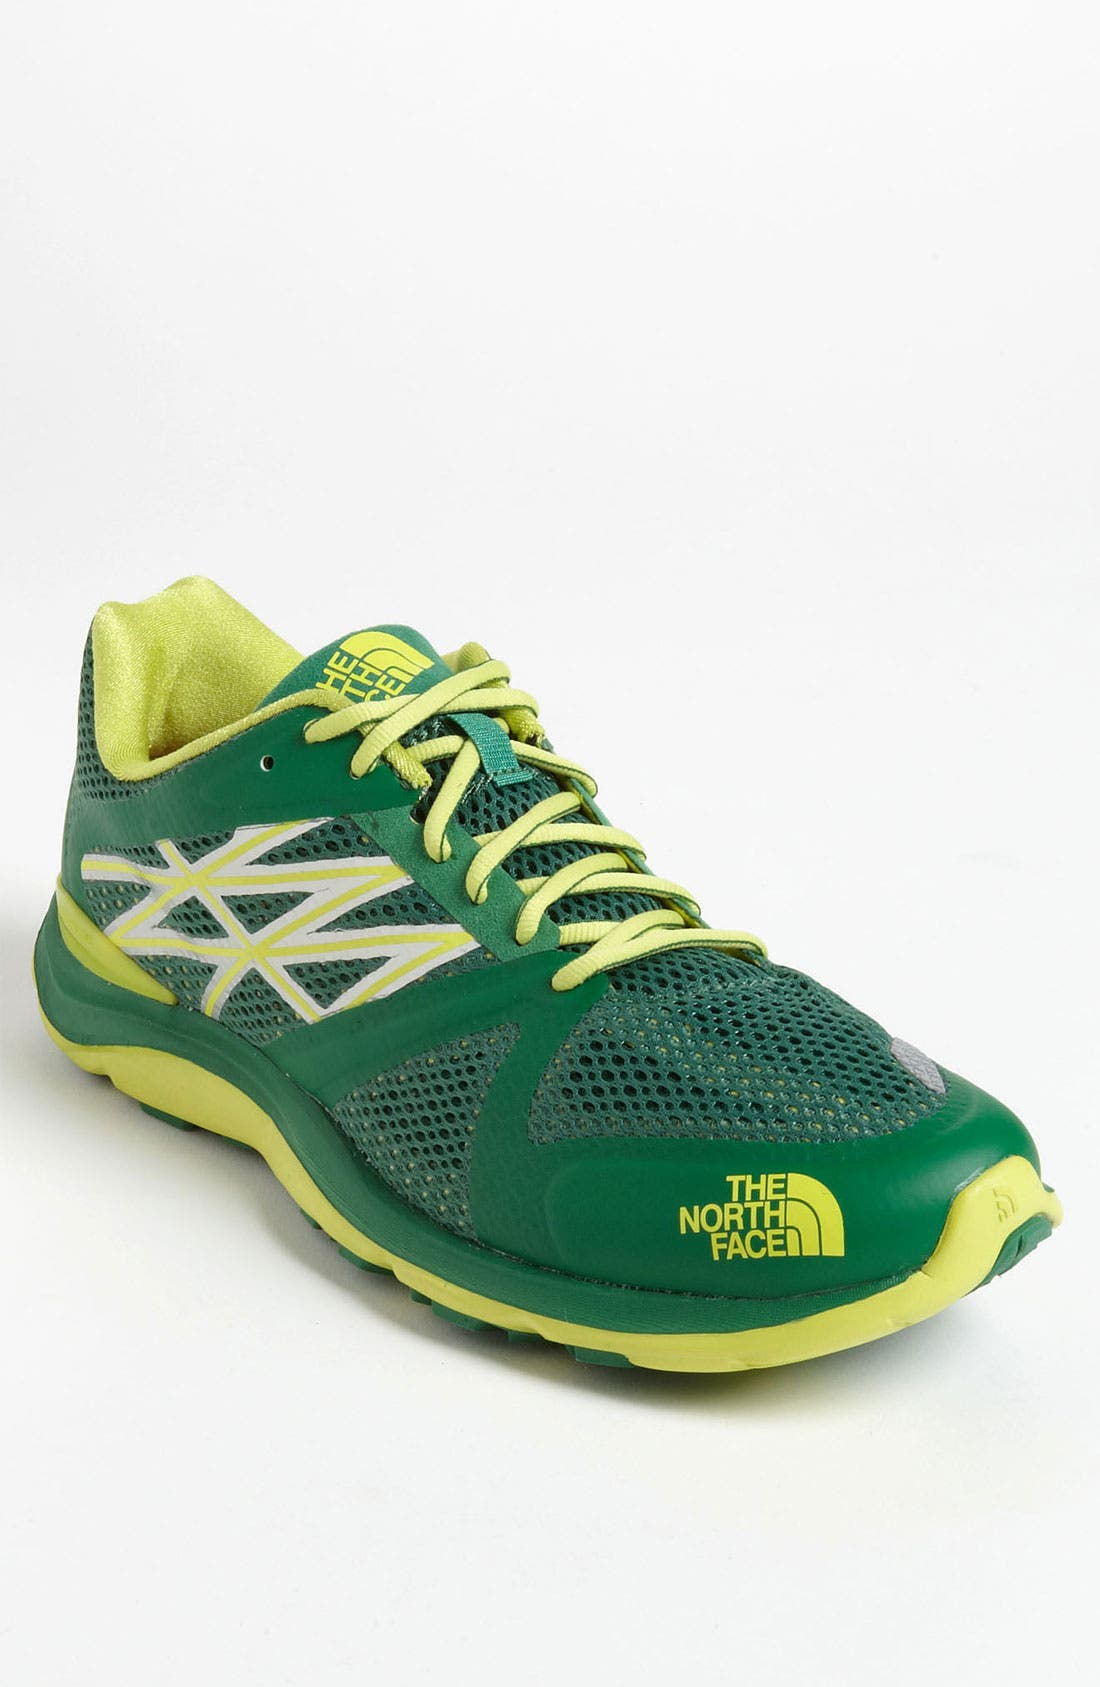 Main Image - The North Face 'Hyper-Track Guide' Training Shoe (Men)